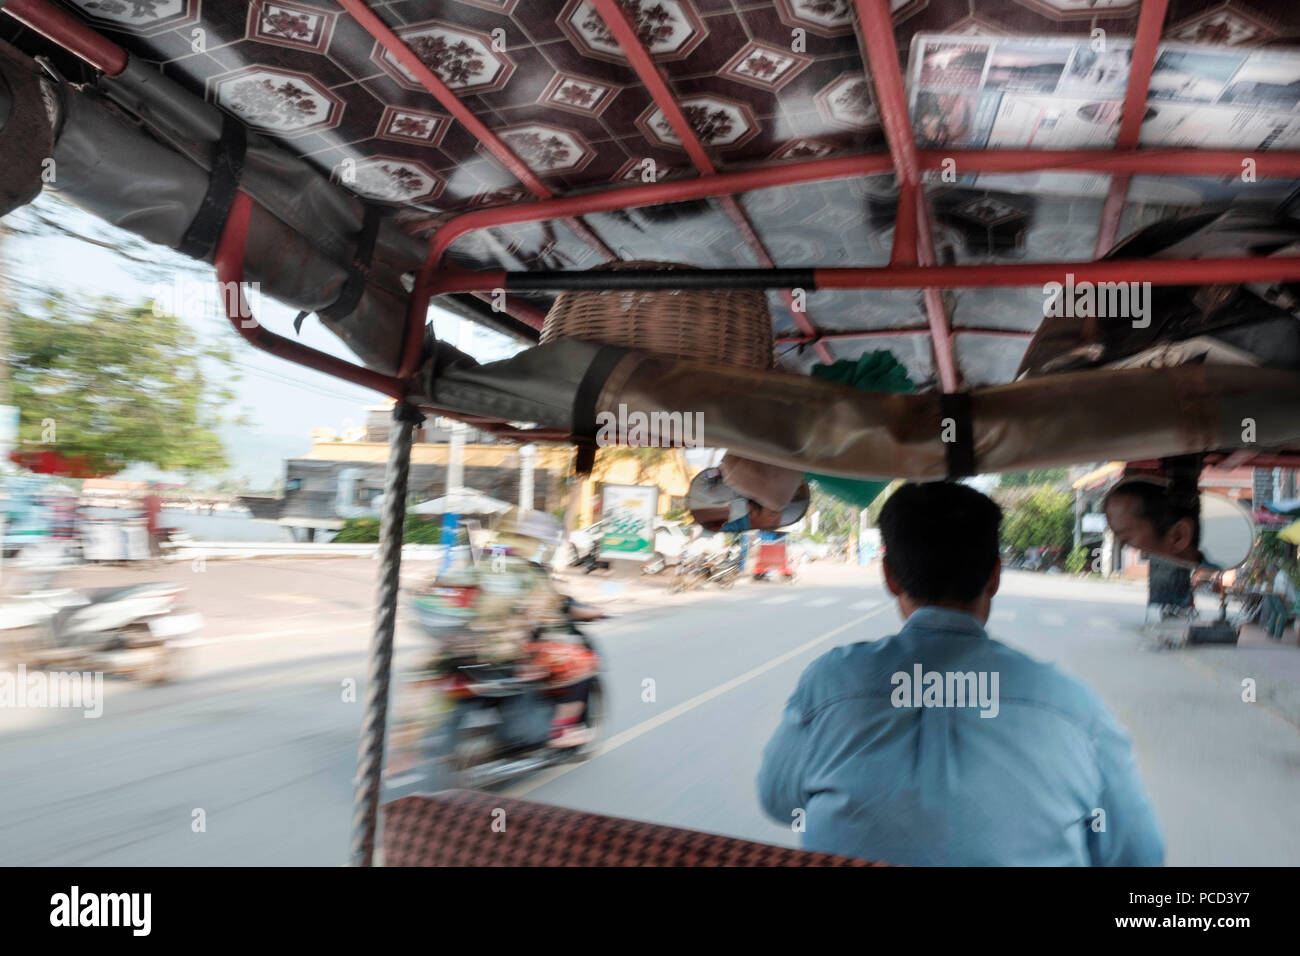 Tuk tuk driver in the streets of Kampt Town, Cambodia, Indochina, Southeast Asia, Asia - Stock Image